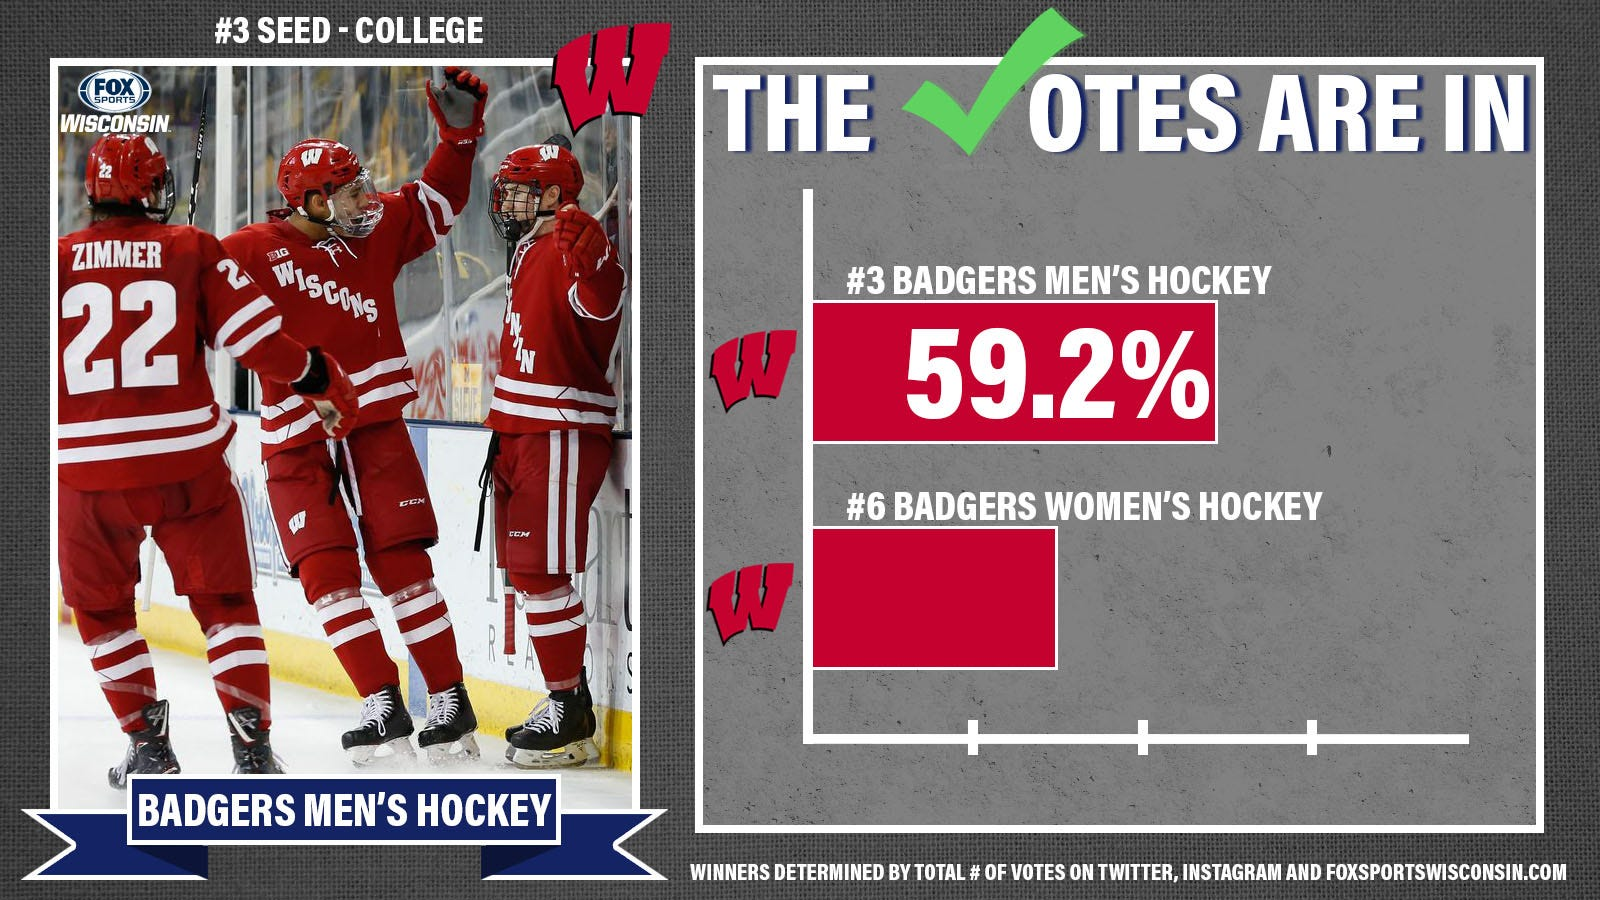 COLLEGE 3 vs. 6 badgers